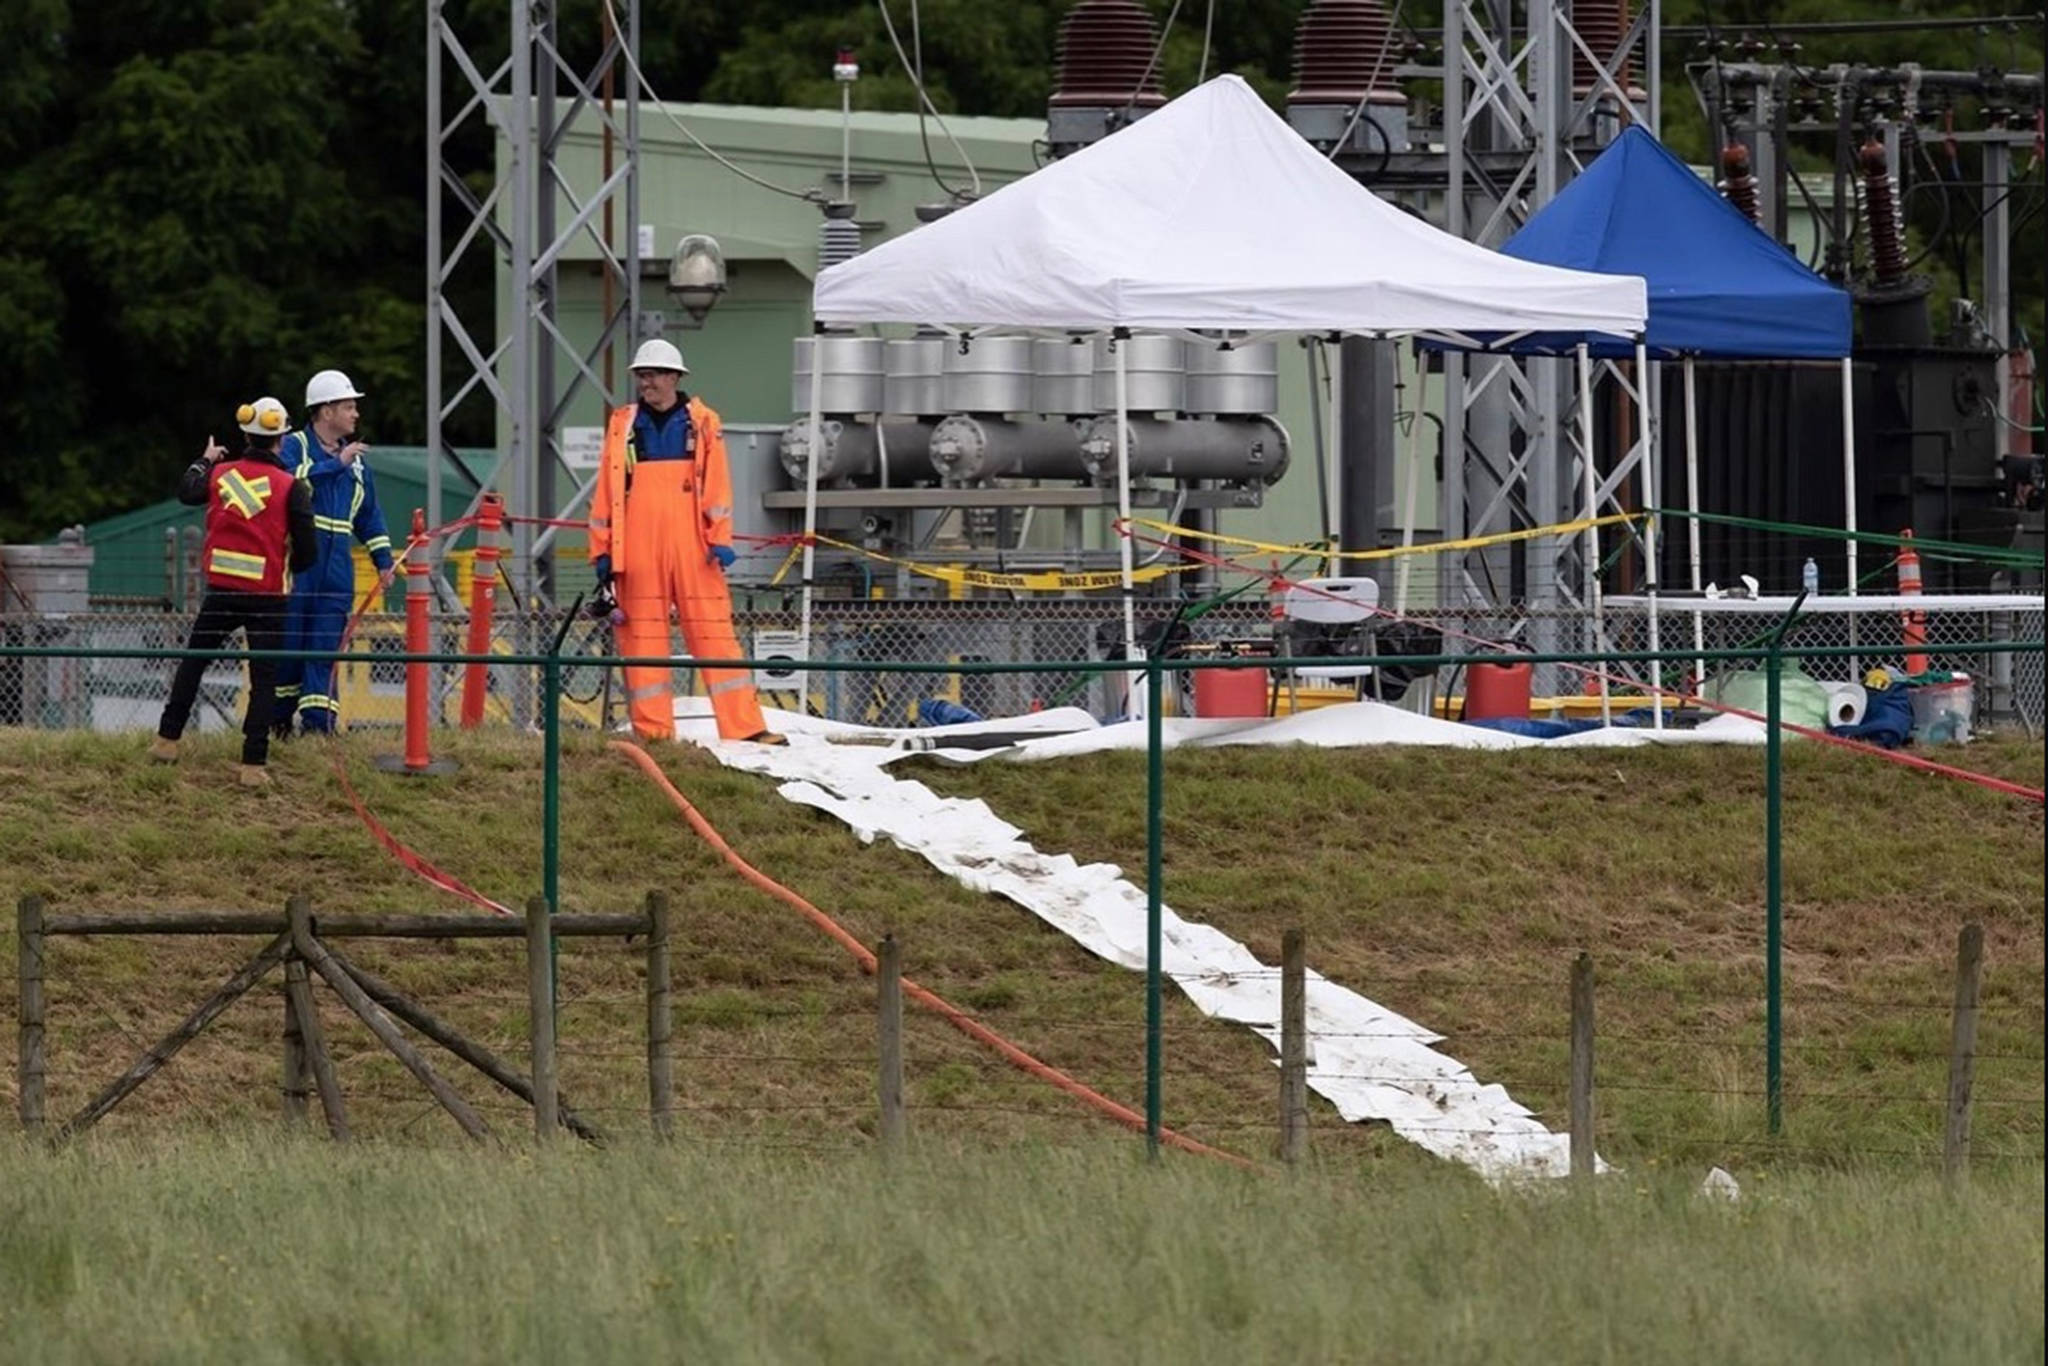 Trans Mountain said the oil spill on Saturday was fully contained on Trans Mountain property, in a June 15, 2020 story. (Photo by THE CANADIAN PRESS)